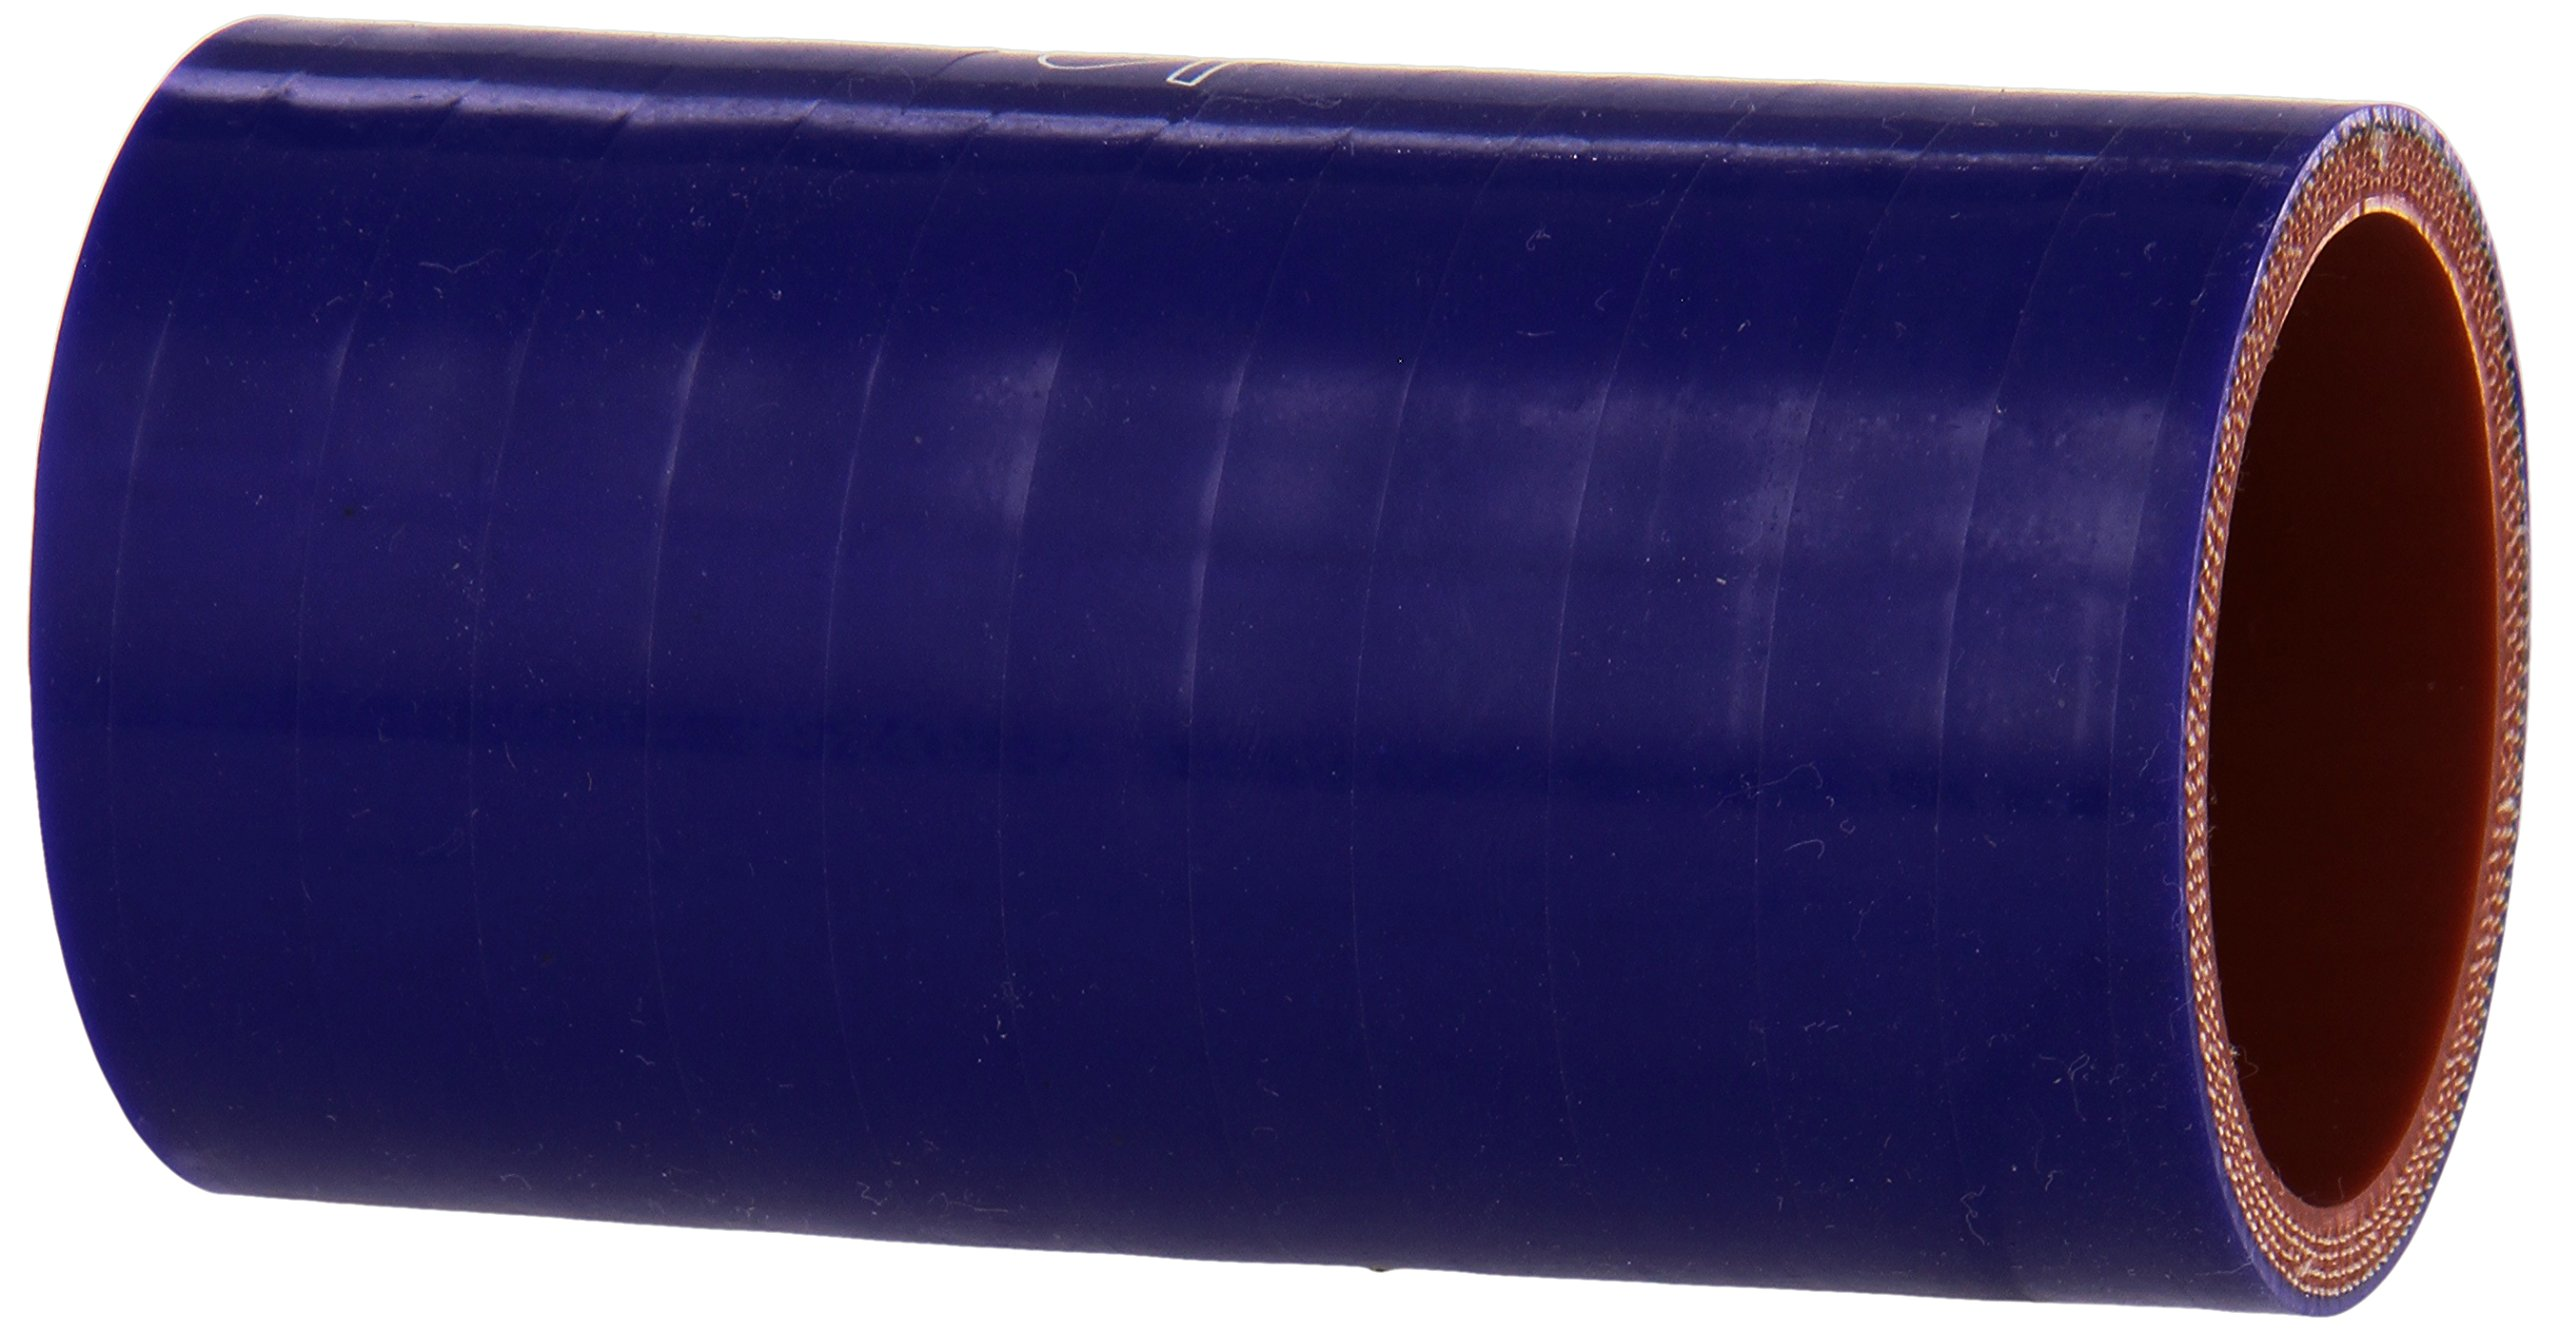 HPS HTSC-175-L4-BLUE Silicone High Temperature 4-ply Reinforced Straight Coupler Hose, 100 PSI Maximum Pressure, 4'' Length, 1-3/4'' ID, Blue